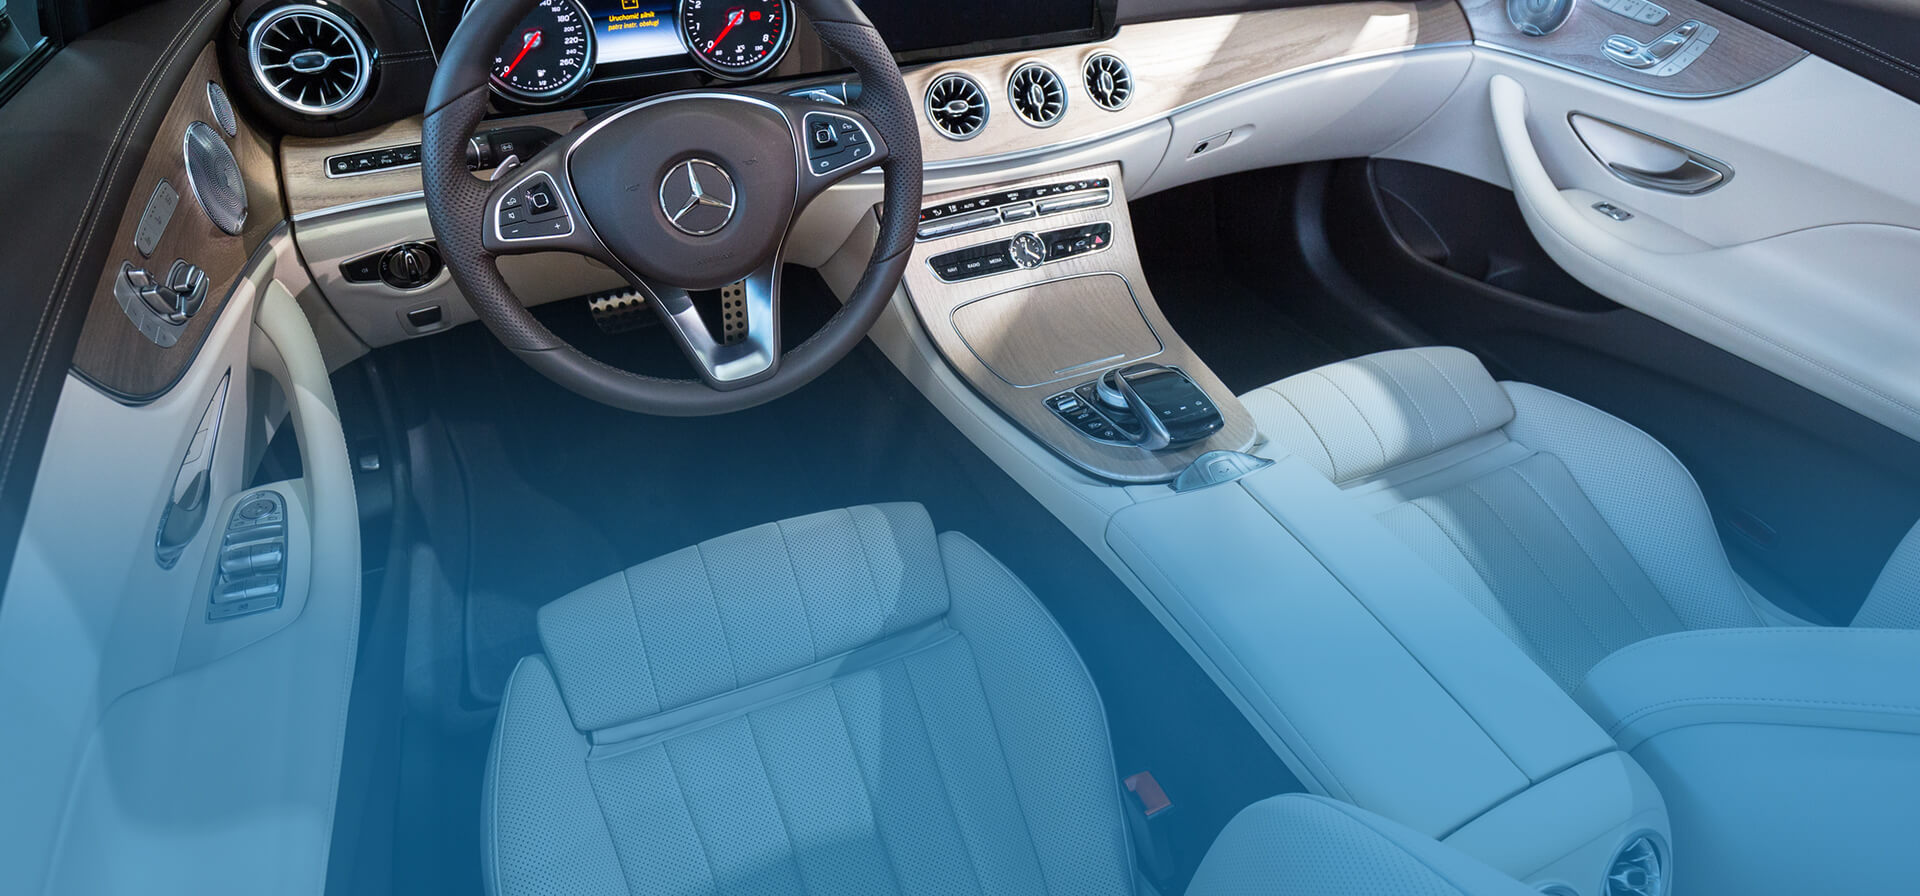 Car Interior Cleaning Services In London Eot Cleaning